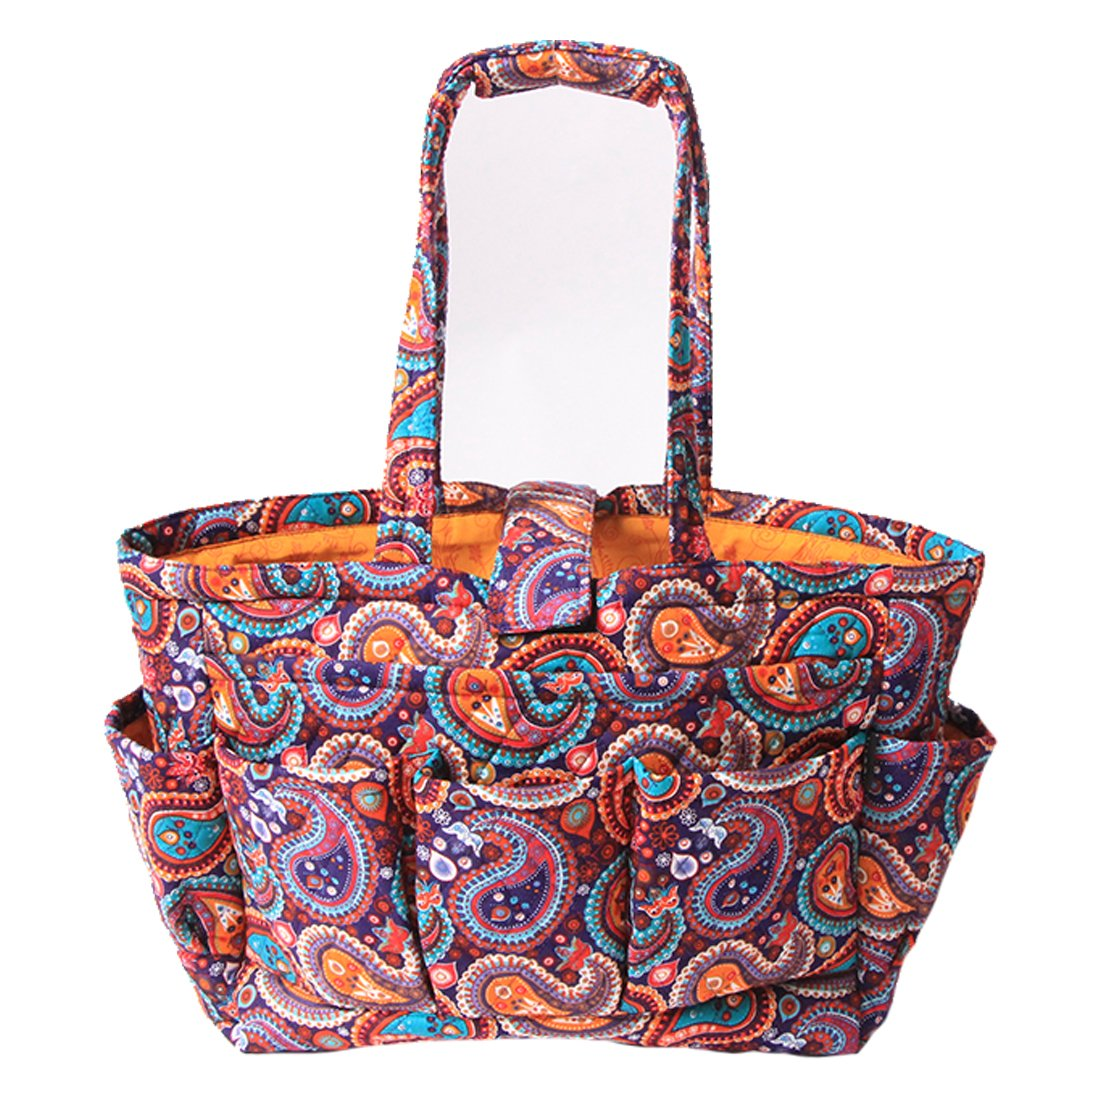 Floral Quilted Cotton Needle Bag Knitting Bag Yarn Storage Tote (Purple Paisley)